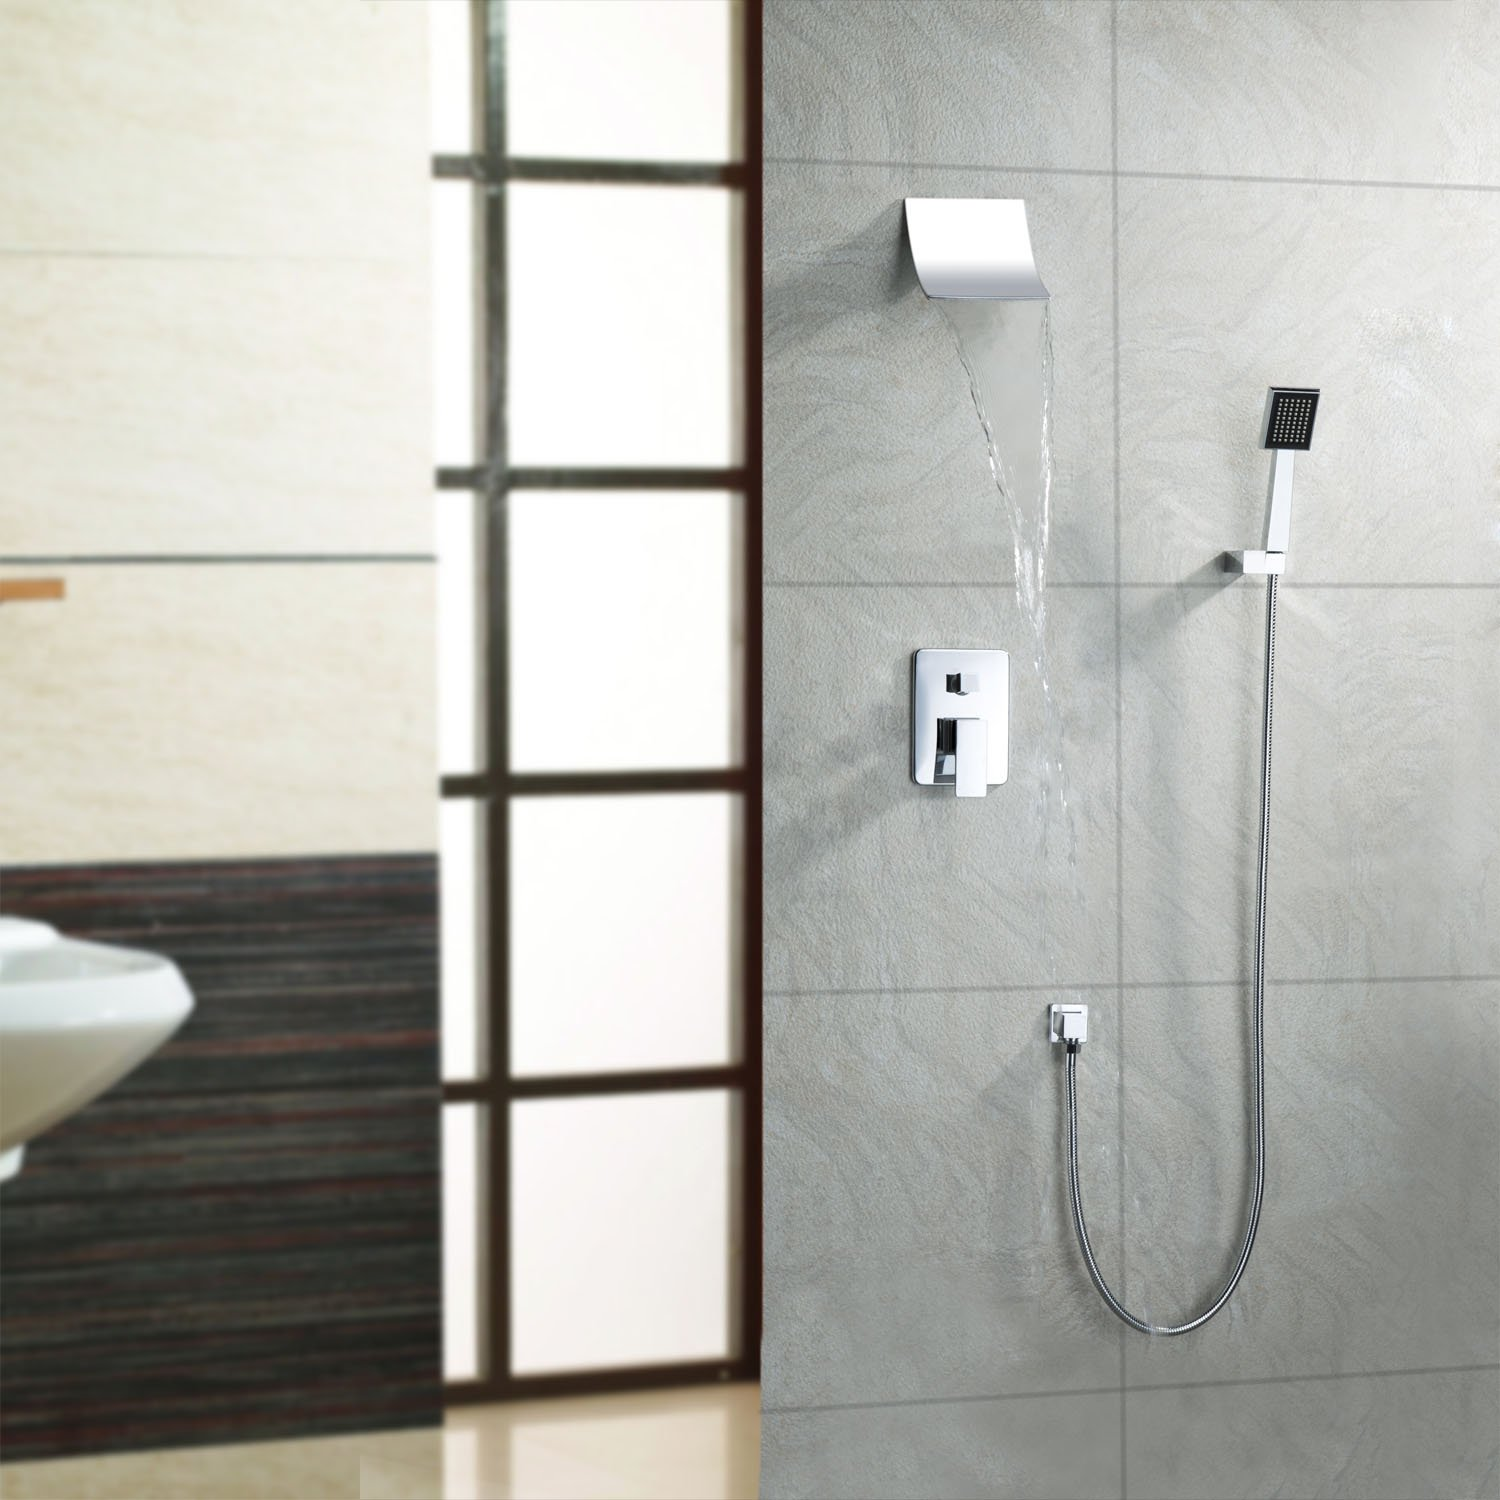 Waterfall wall mount bathroom faucet - Lightinthebox Contemporary Wall Mount Widespread Waterfall Shower Faucet With Fixed Rainfall Shower Head And Handheld Shower With Shower Holder And Arms